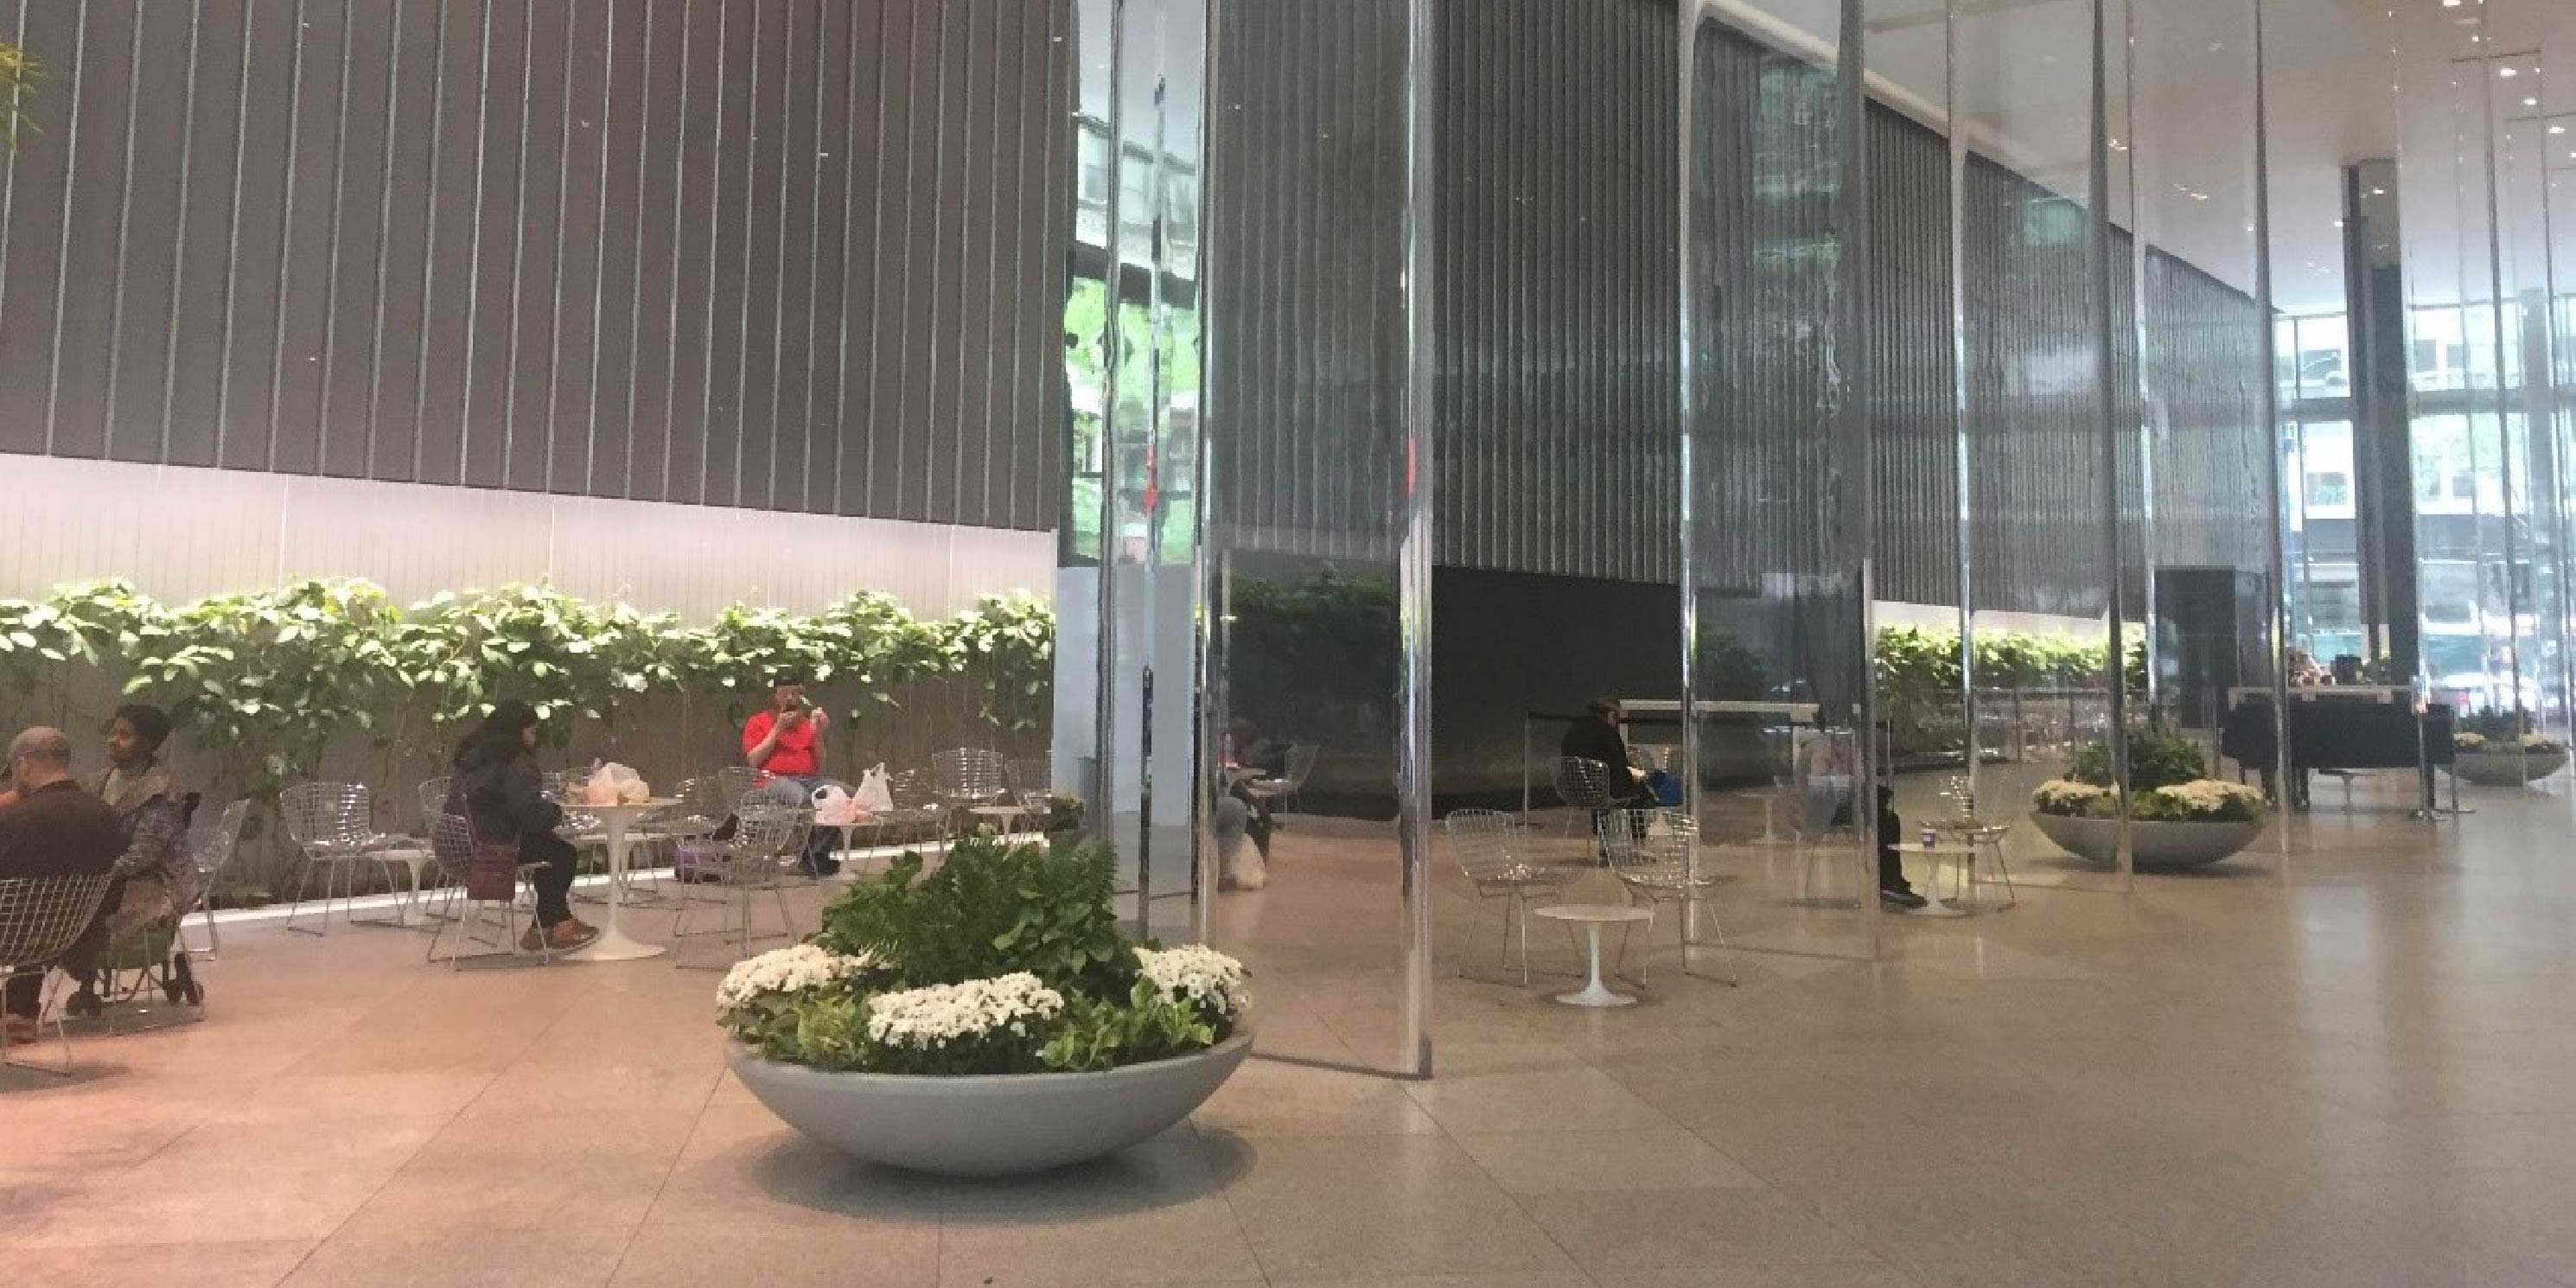 the public space in the lobby of the Blackrock building